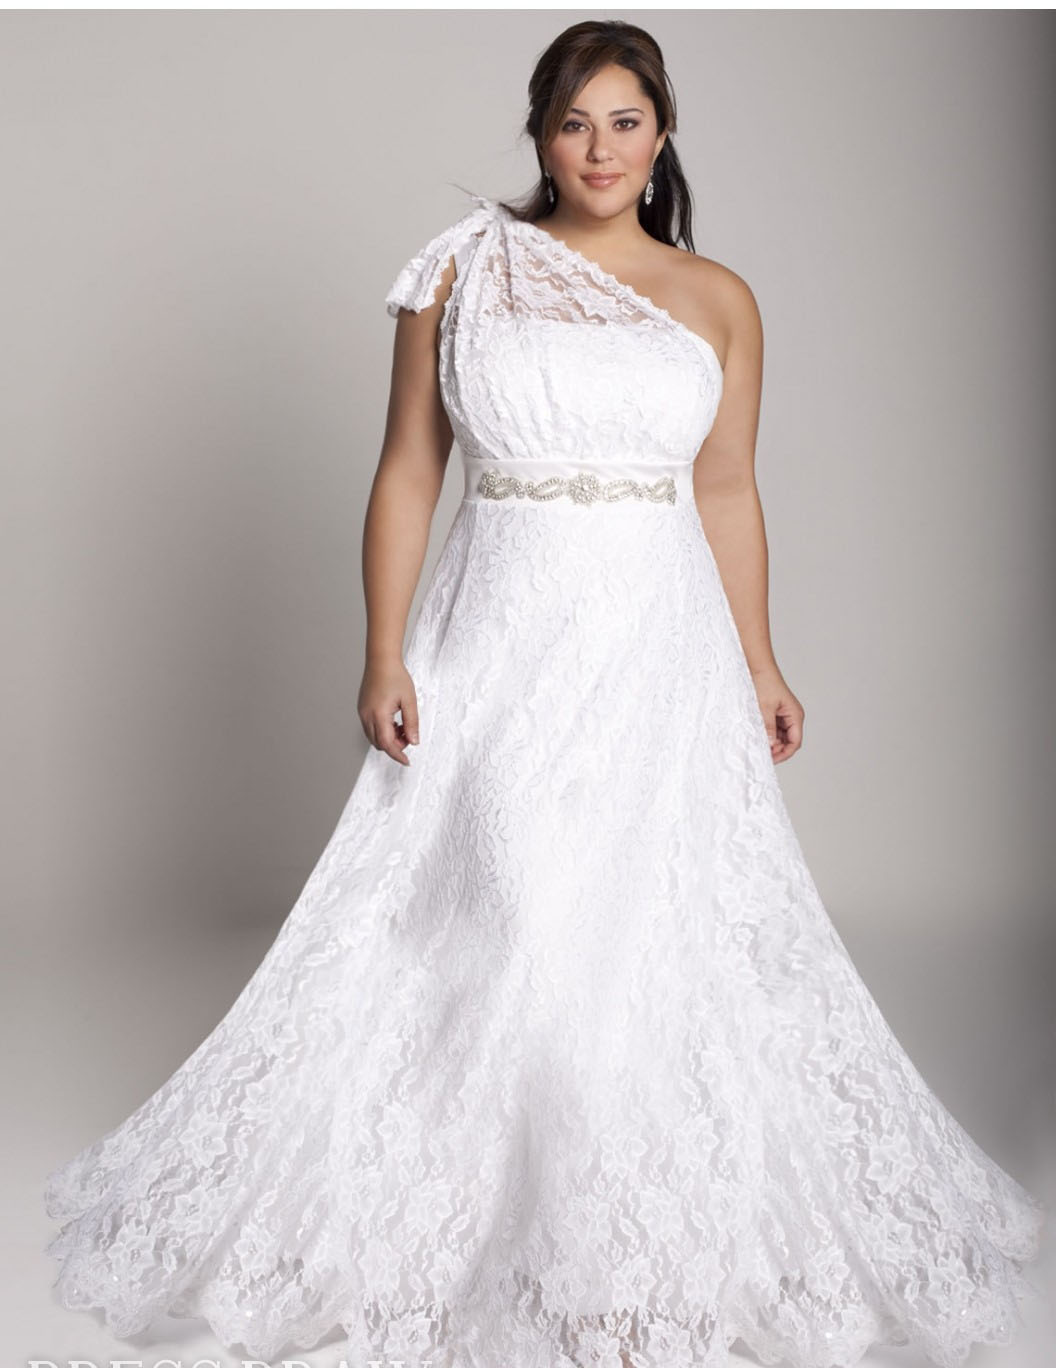 cheap plus size wedding dresses, discount plus size wedding dresses, cheap plus size wedding dresses under 100, informal plus size wedding dresses, cheap plus size wedding dresses under 200, cheap plus size wedding dresses under 50, plus size wedding dresses with sleeves, cheap plus size wedding dresses with color